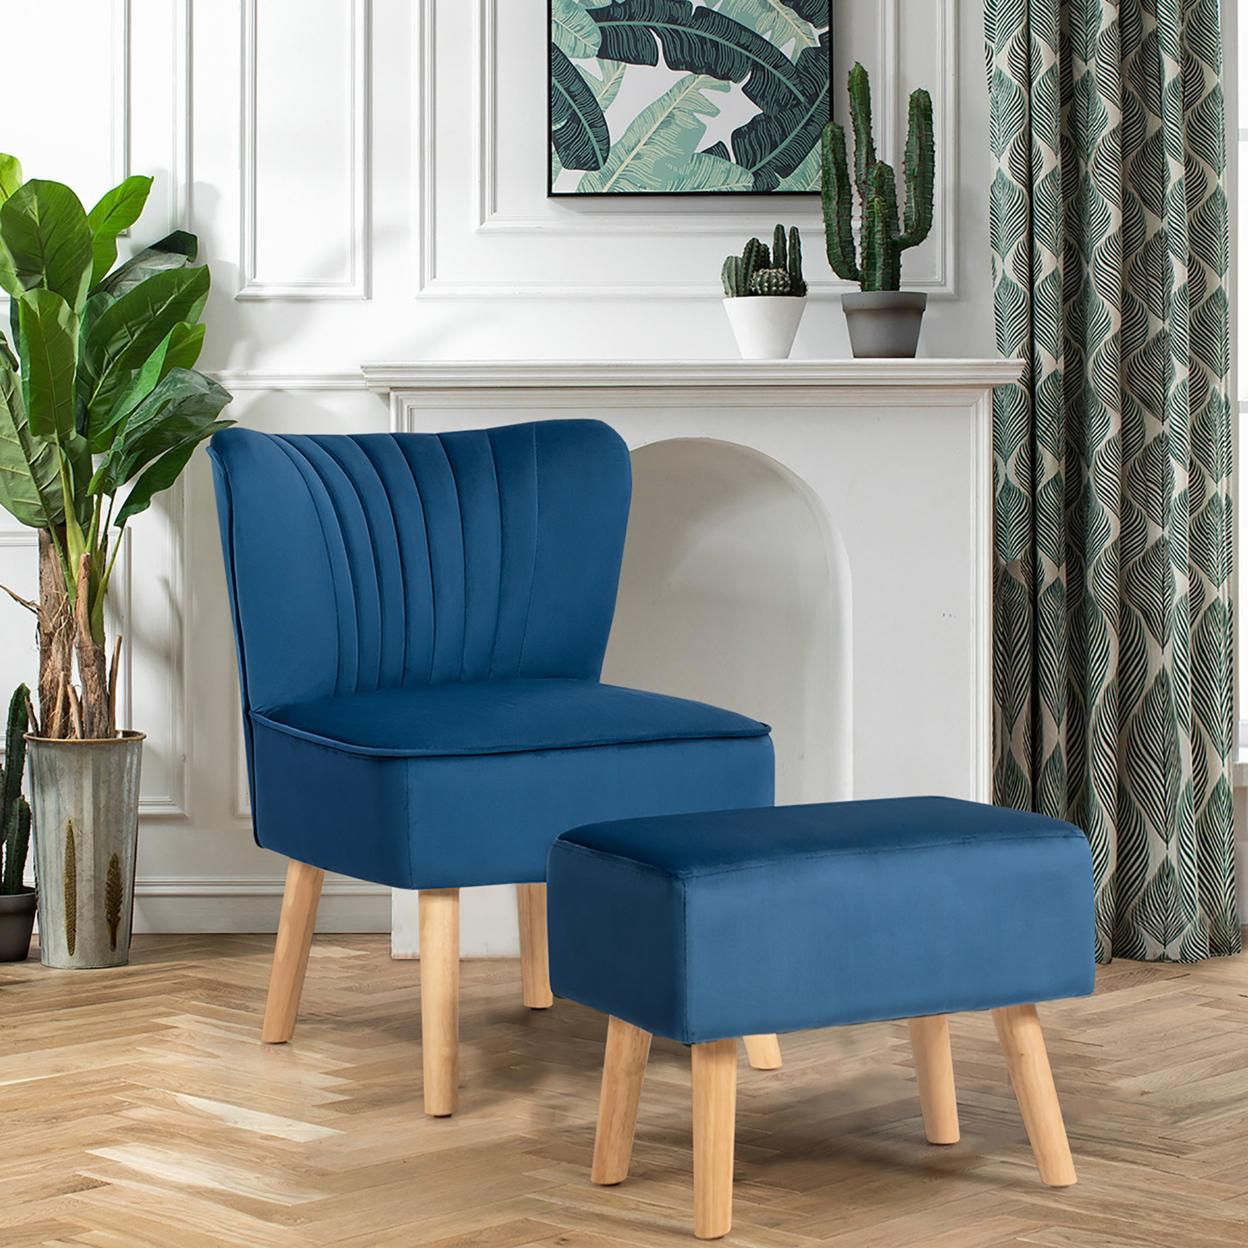 Costway Leisure Chair and Ottoman Thick Padded Velvet Tufted Sofa Set w/ Wood Legs Pink\Blue\ Green